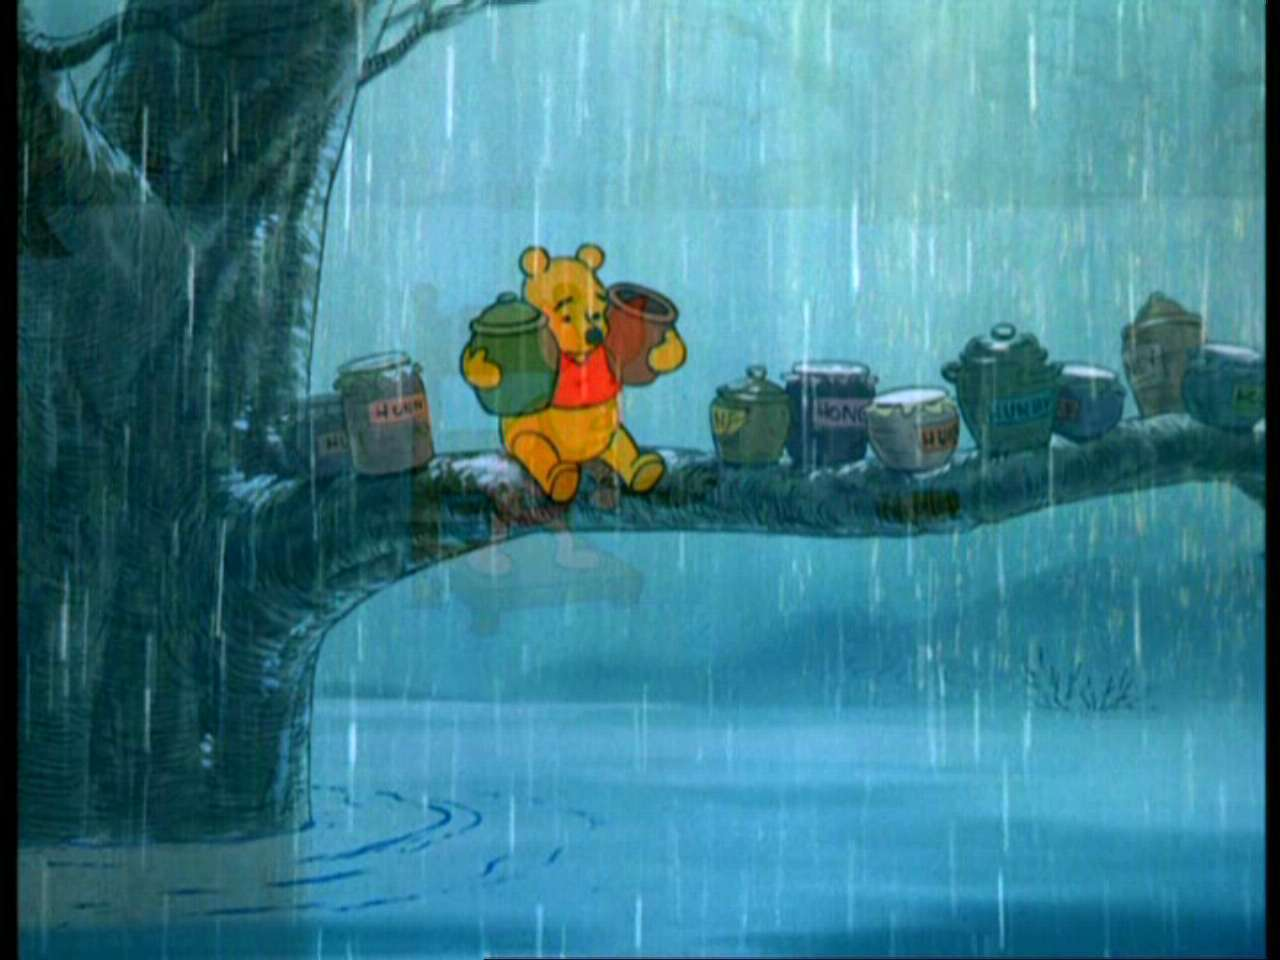 Wallpaper Falling Off Wall Winnie The Pooh And The Blustery Day Winnie The Pooh